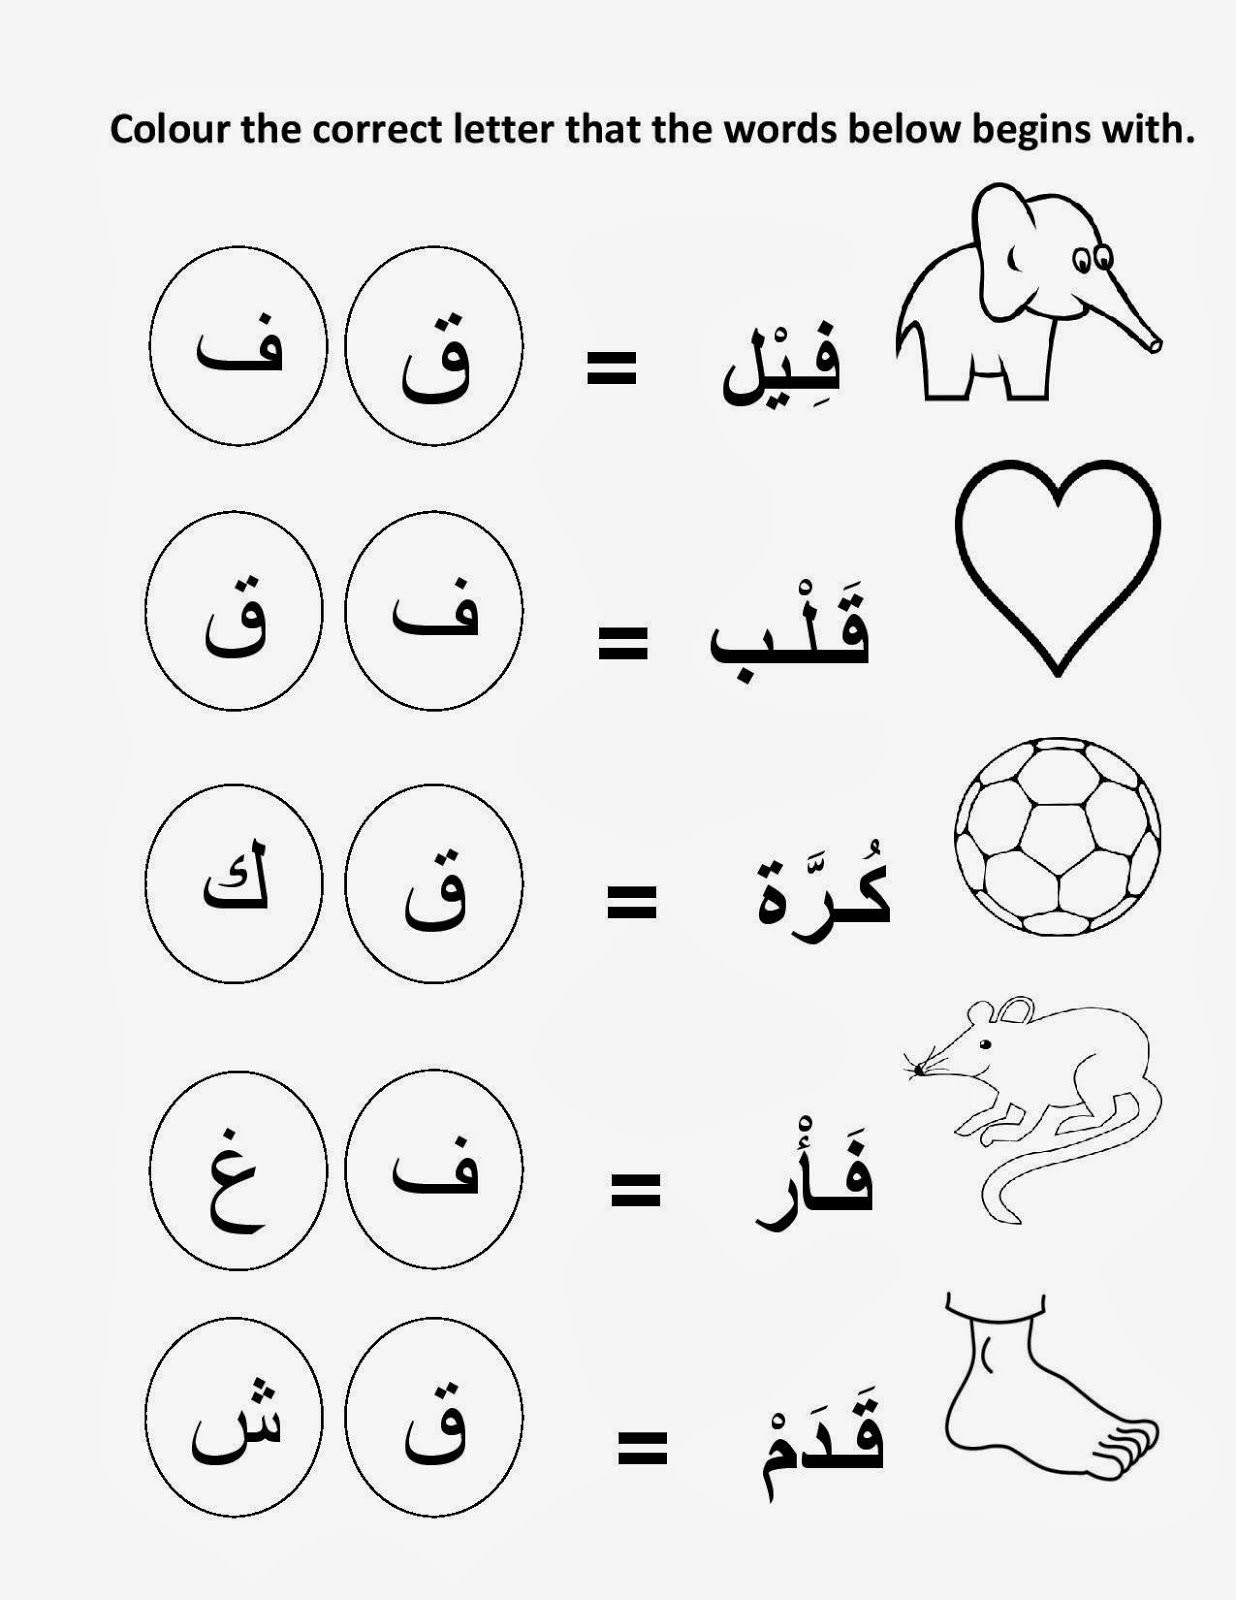 Urdu Alphabet Worksheet Binomial Distribution Math is Fun Spanish Vocab Worksheets